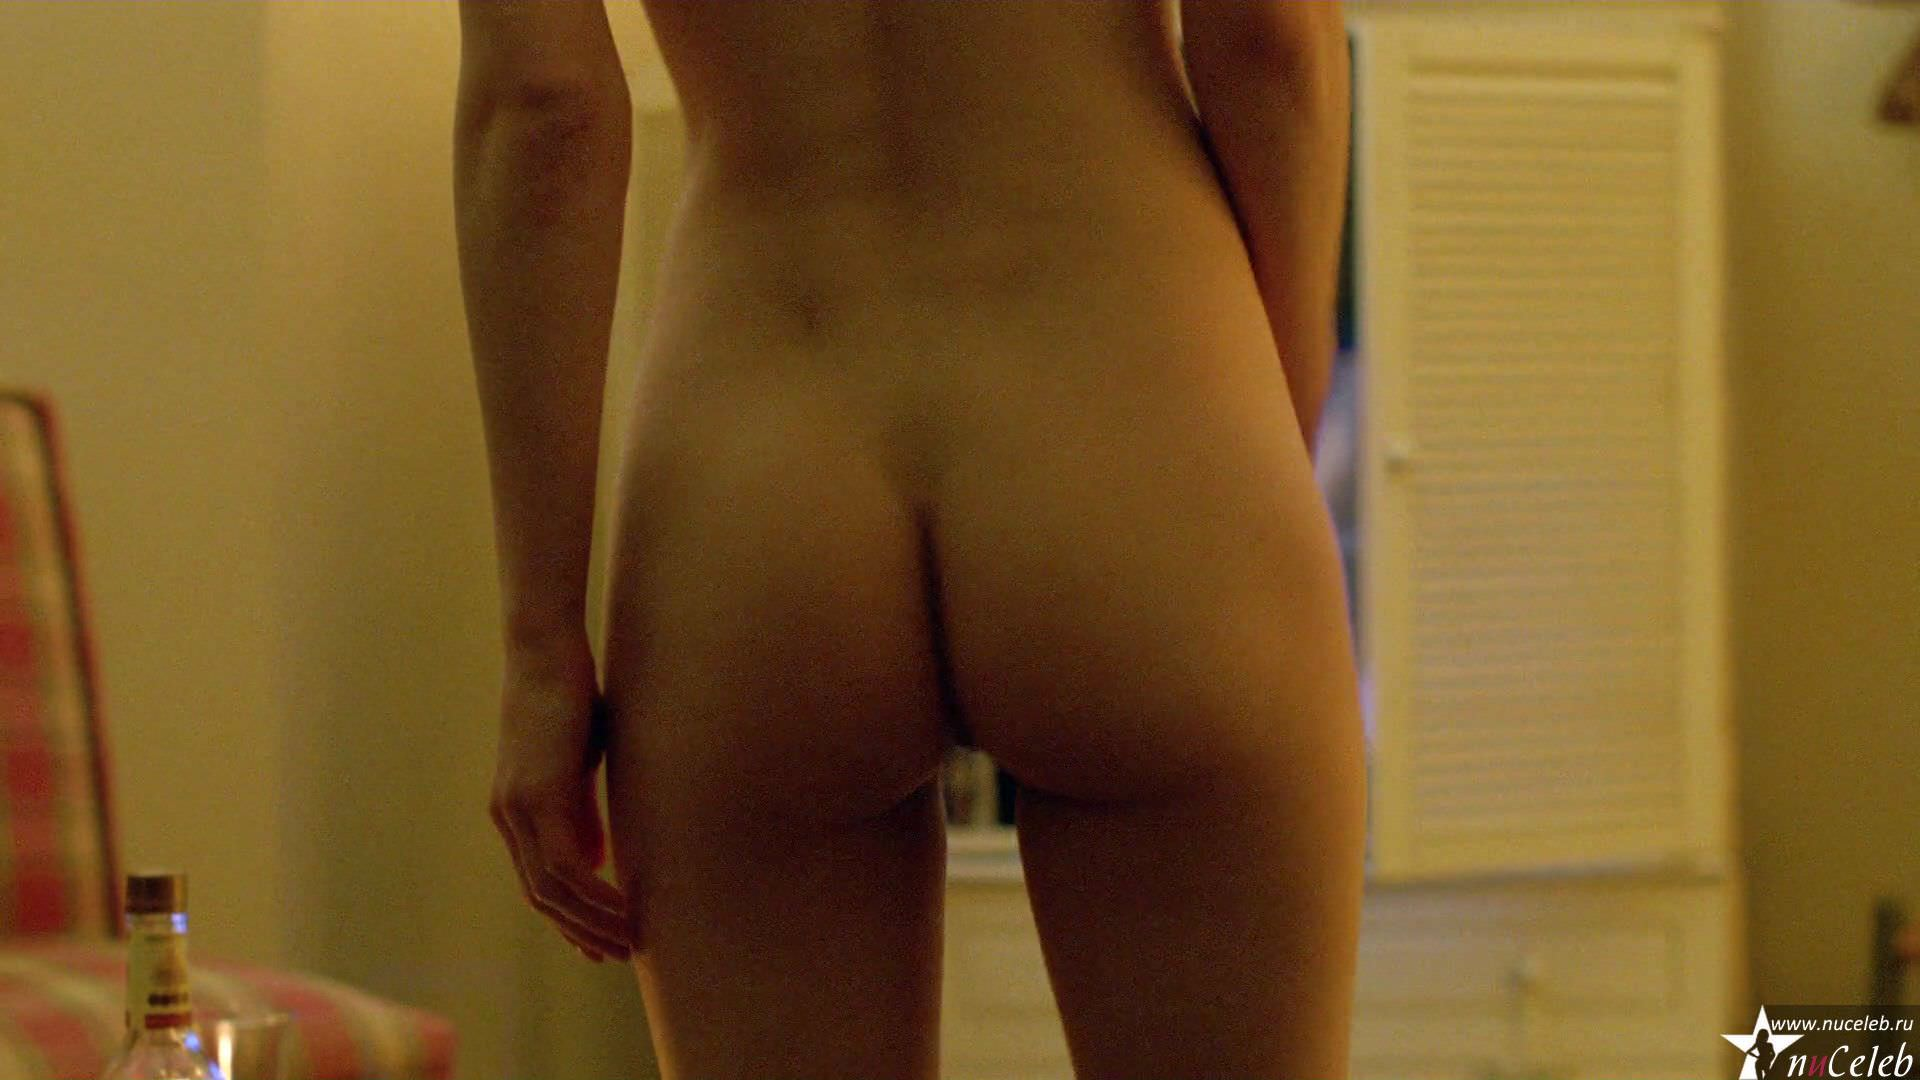 San andreas movie uncensored naked scene porn clips